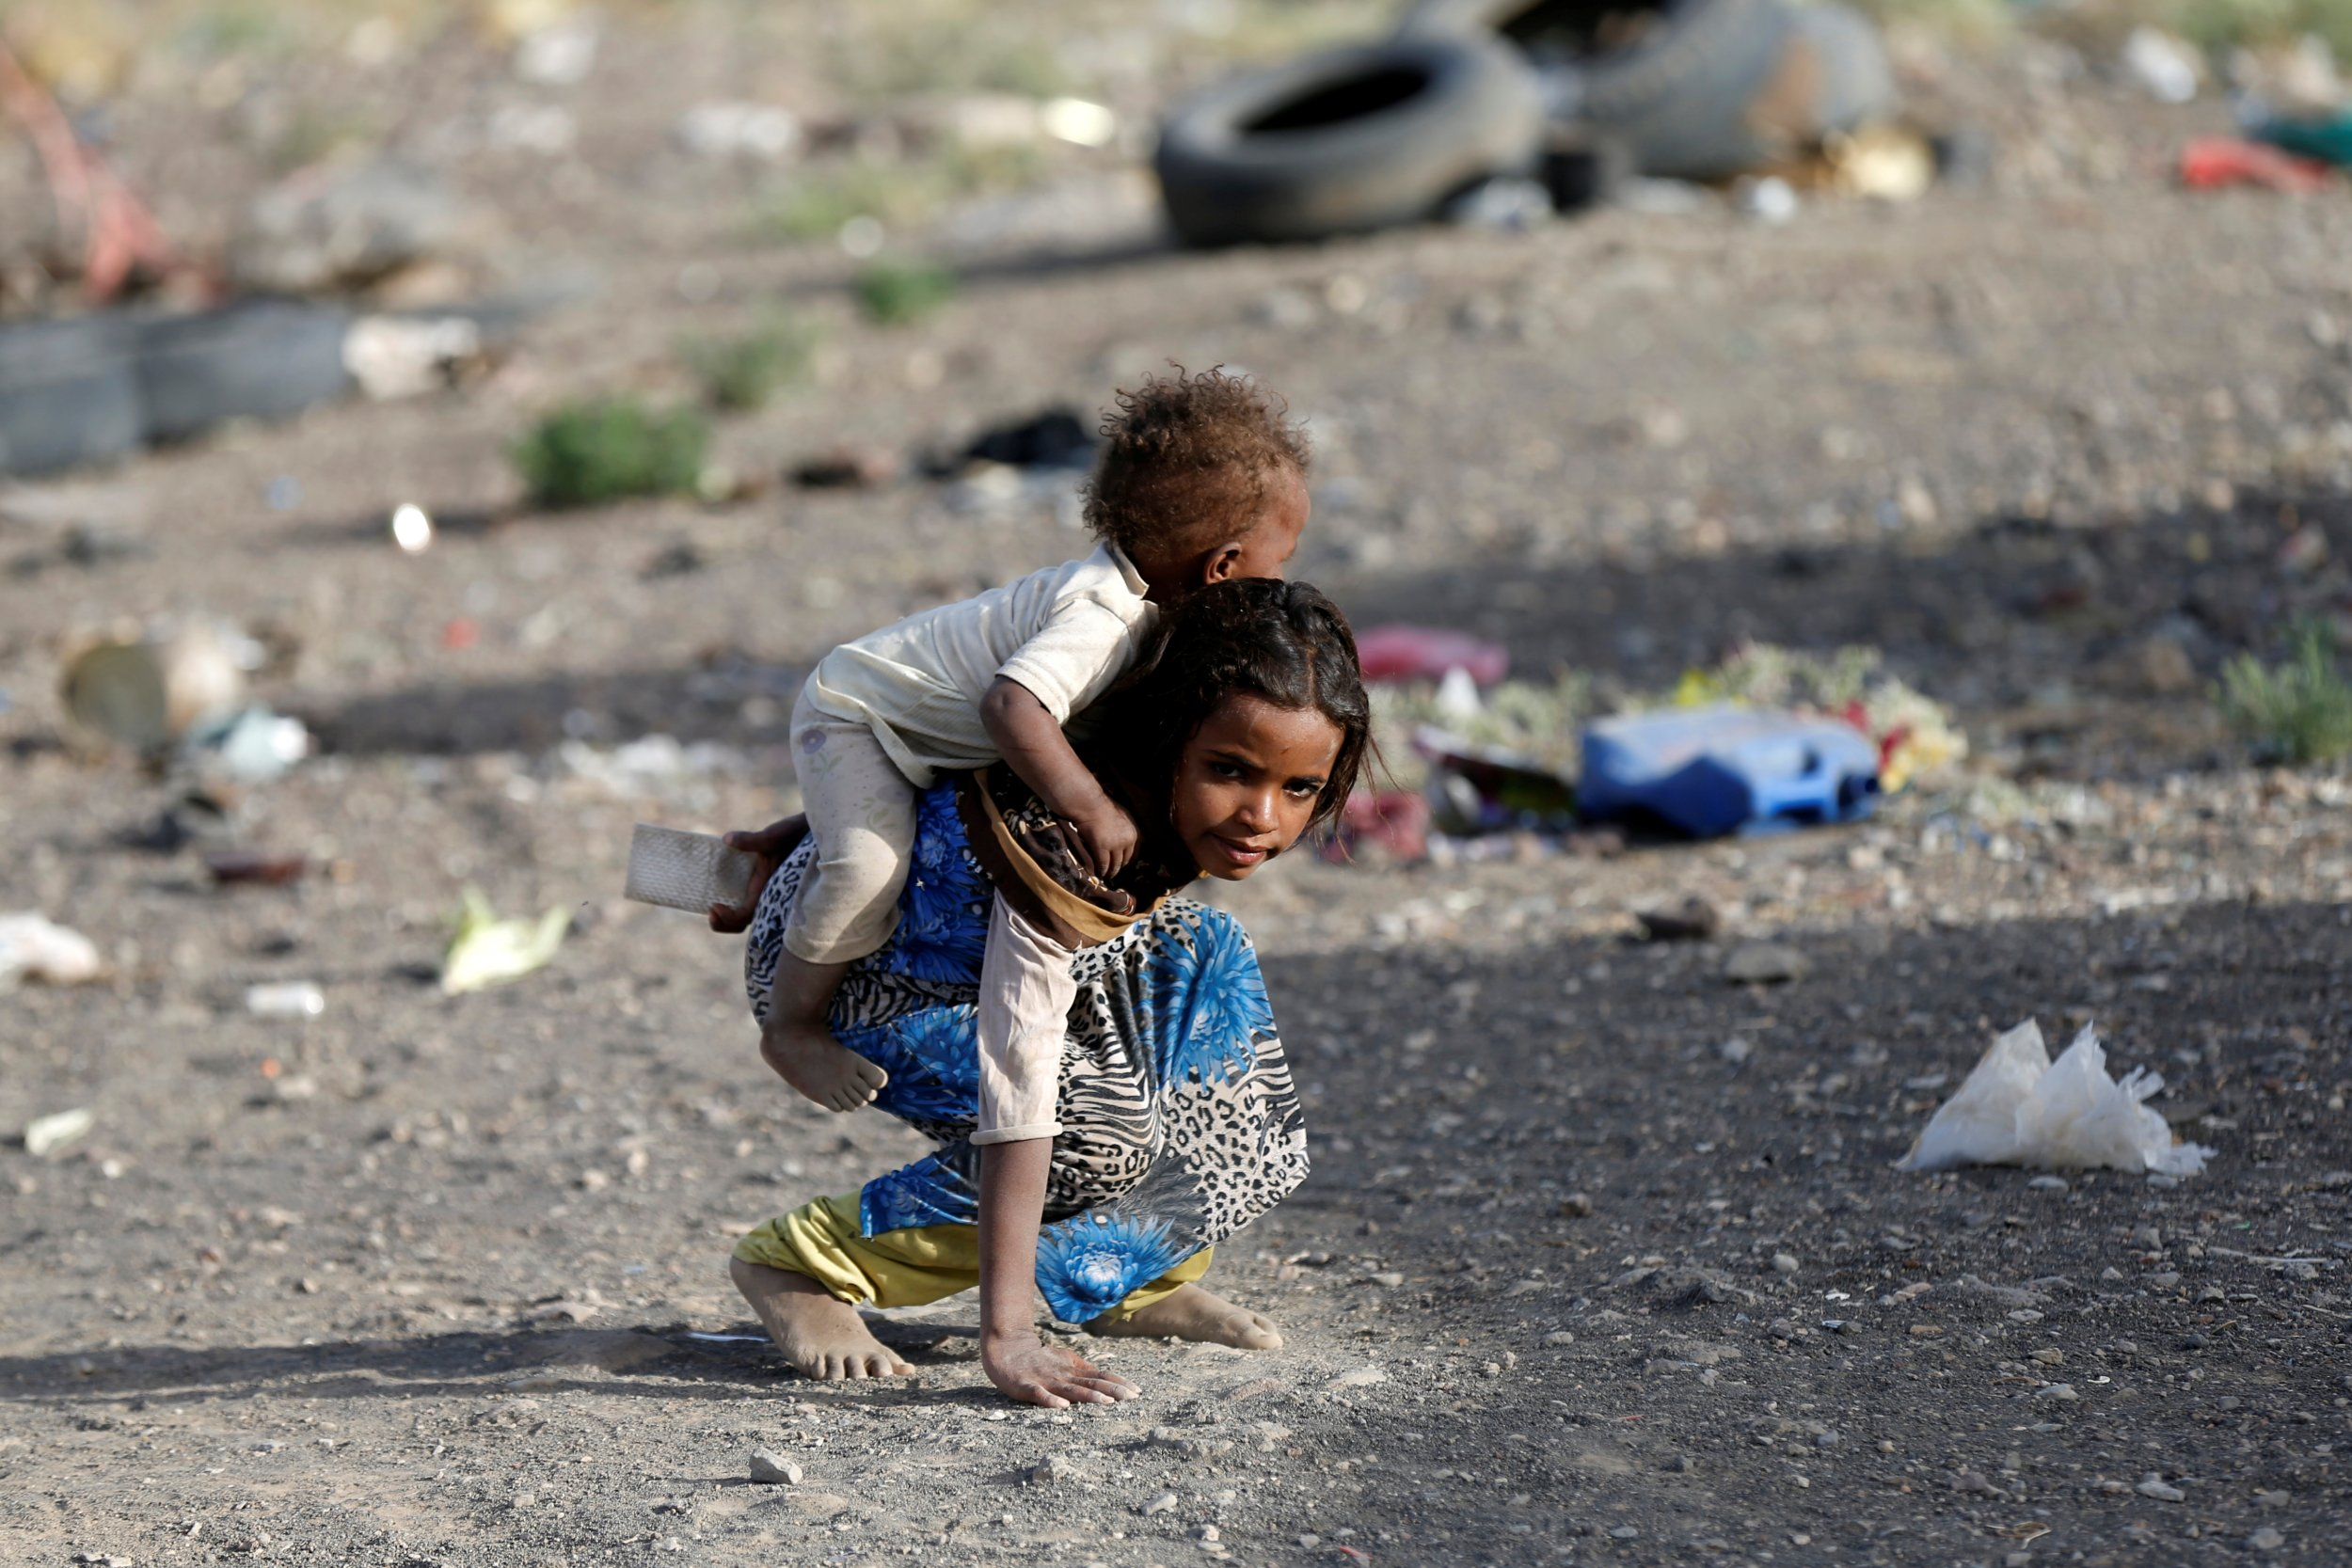 Give War Chance >> Yemen Could Become the Next Syria: It's Time the World Stepped in